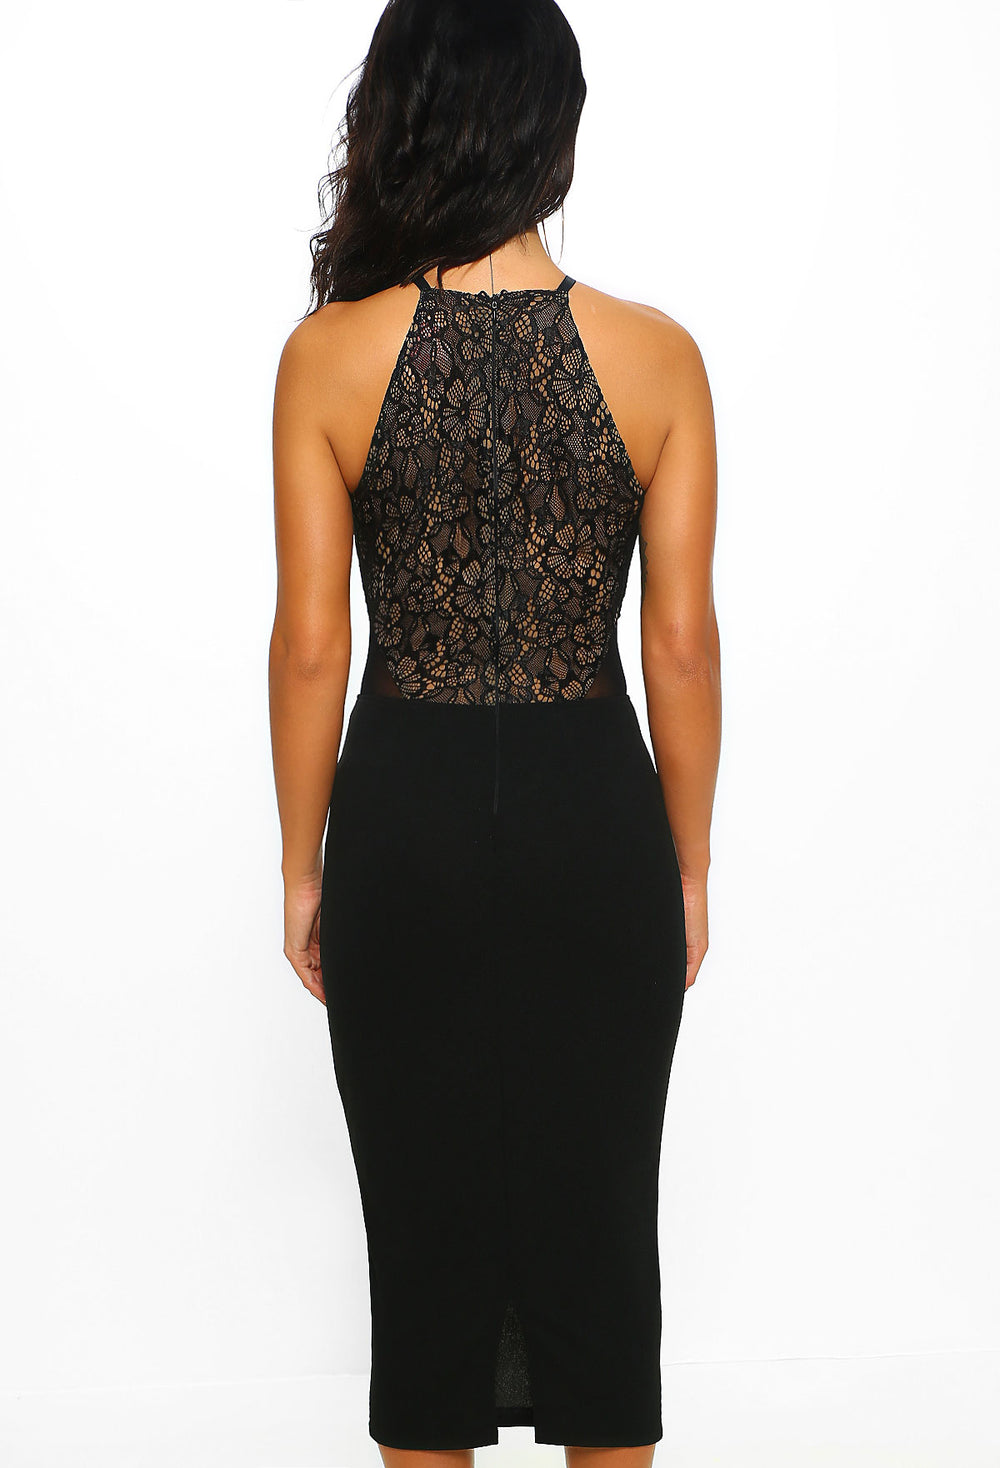 Hollywood Dreamer Black Lace Bodycon Midi Dress Pink